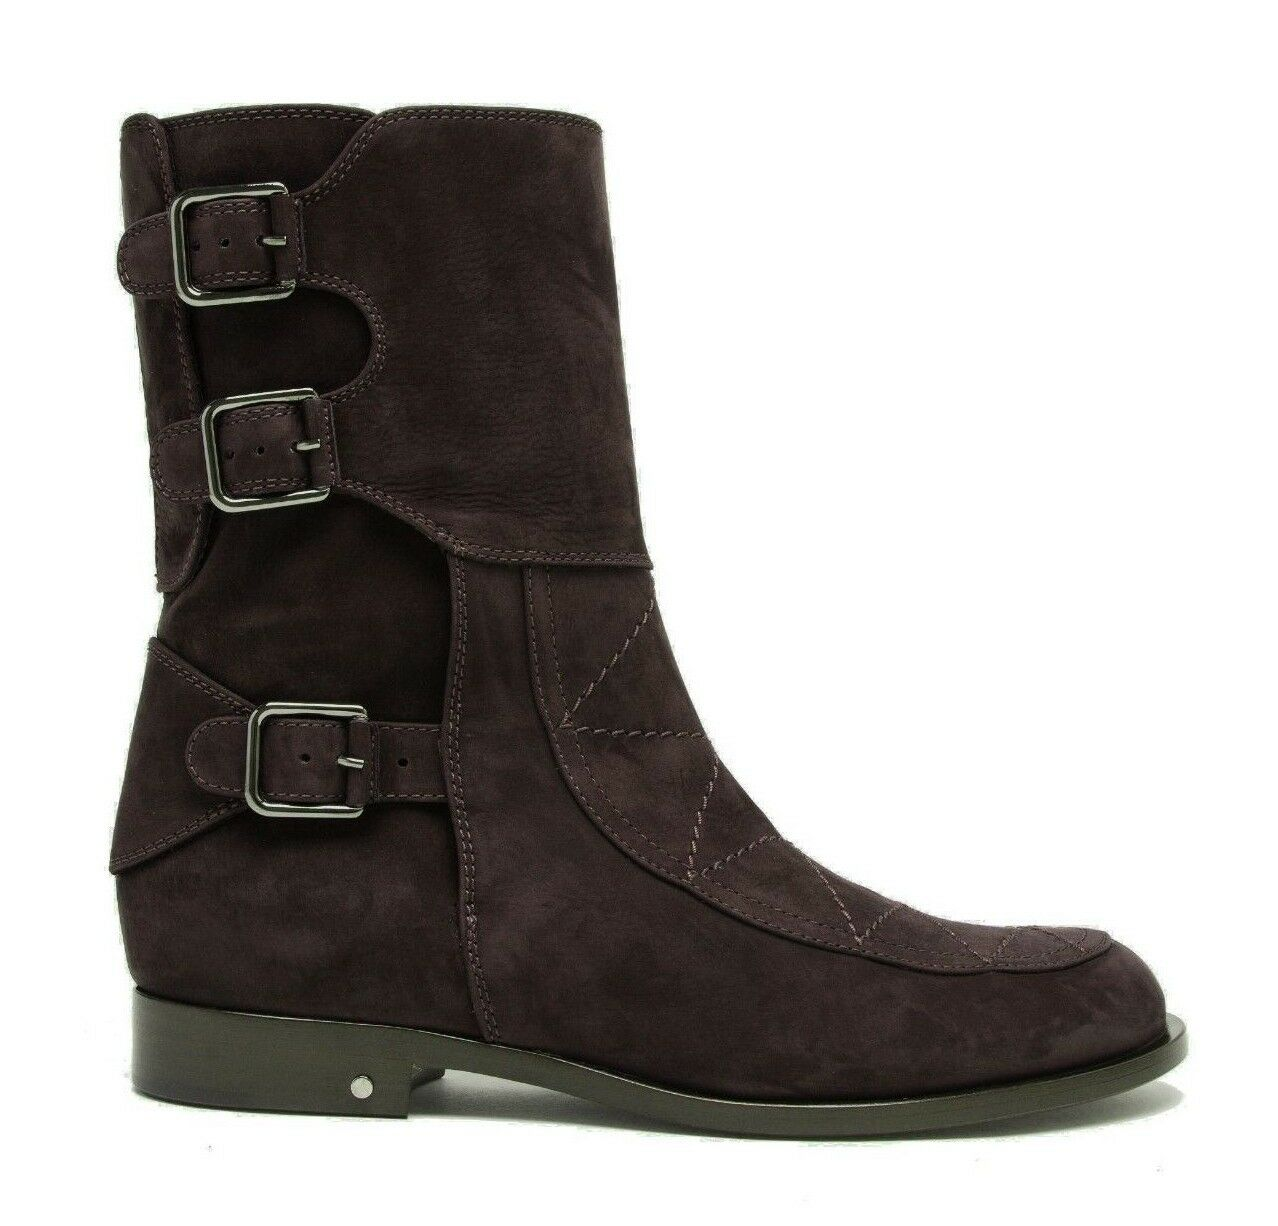 $950 - LAURENCE DECADE Women's 'RICK' Brown SUEDE Buckles ANKLE BOOTS - 41 / 11